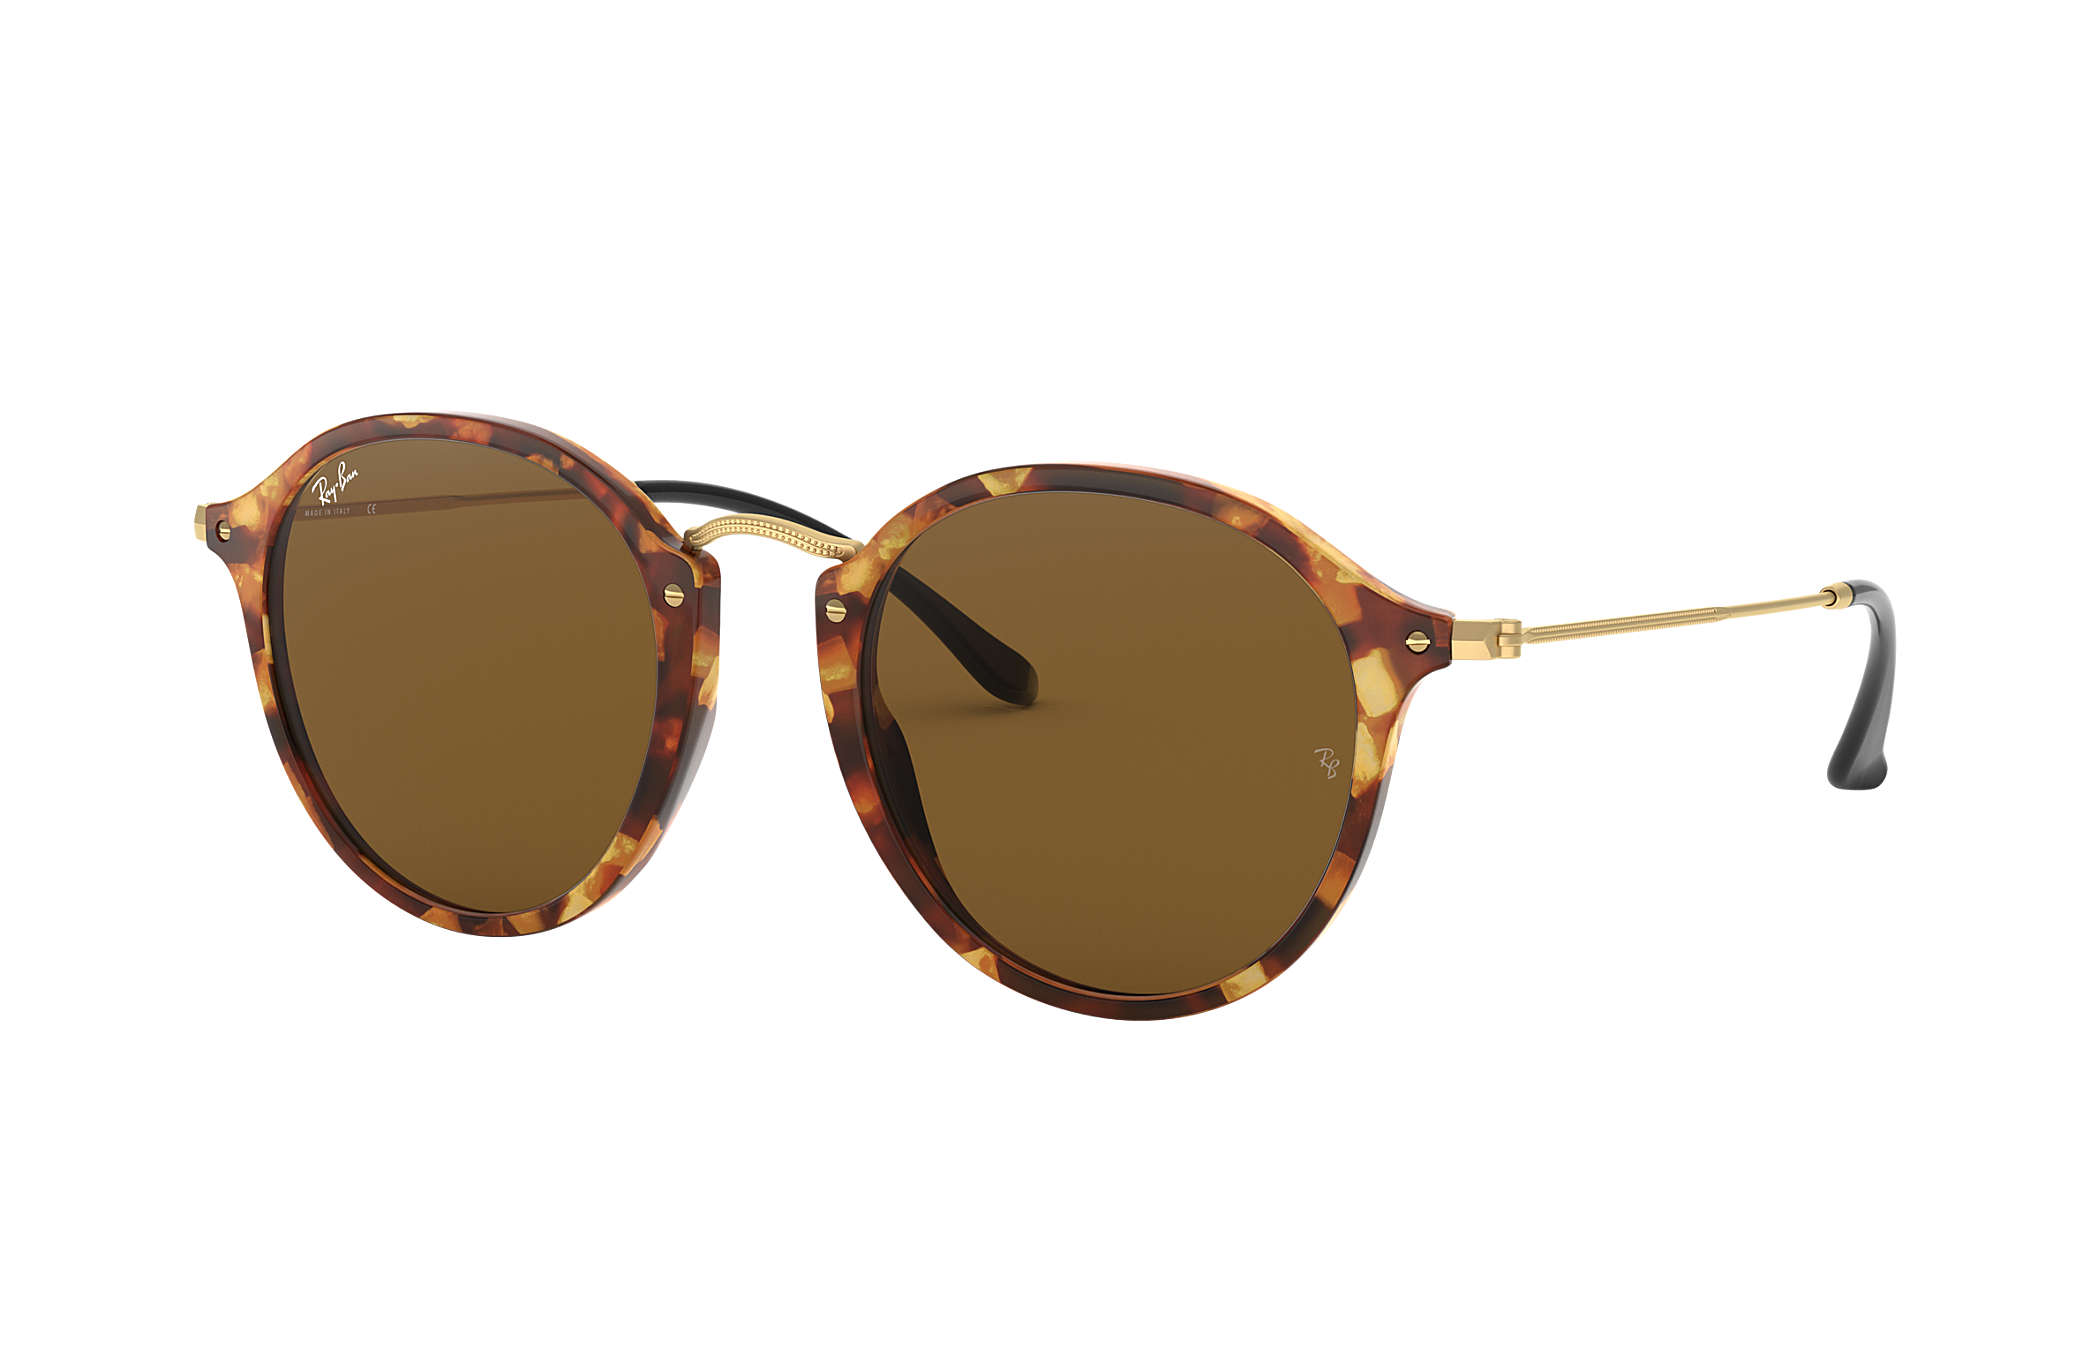 d0a636f7637 Ray-Ban Round Fleck RB2447 Tortoise - Acetate - Brown Lenses ...